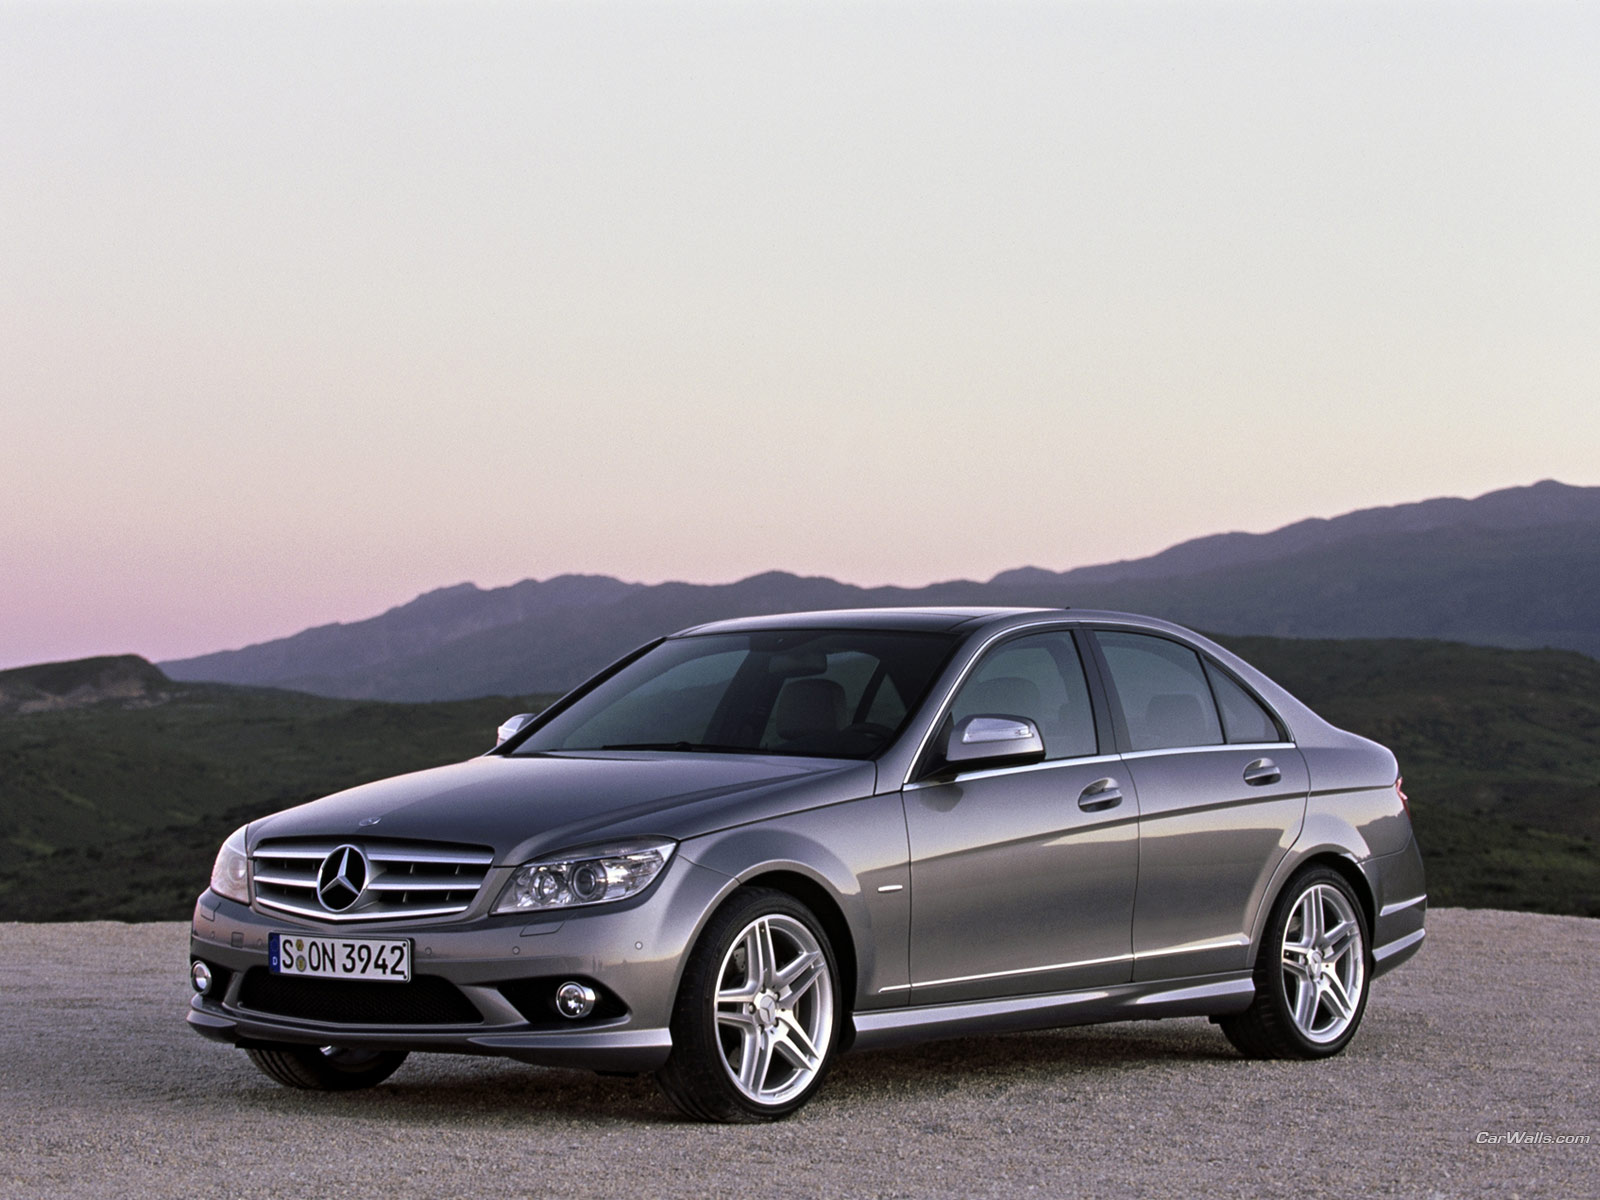 Mercedes benz wallpapers mercedes benz pictures for The price of mercedes benz